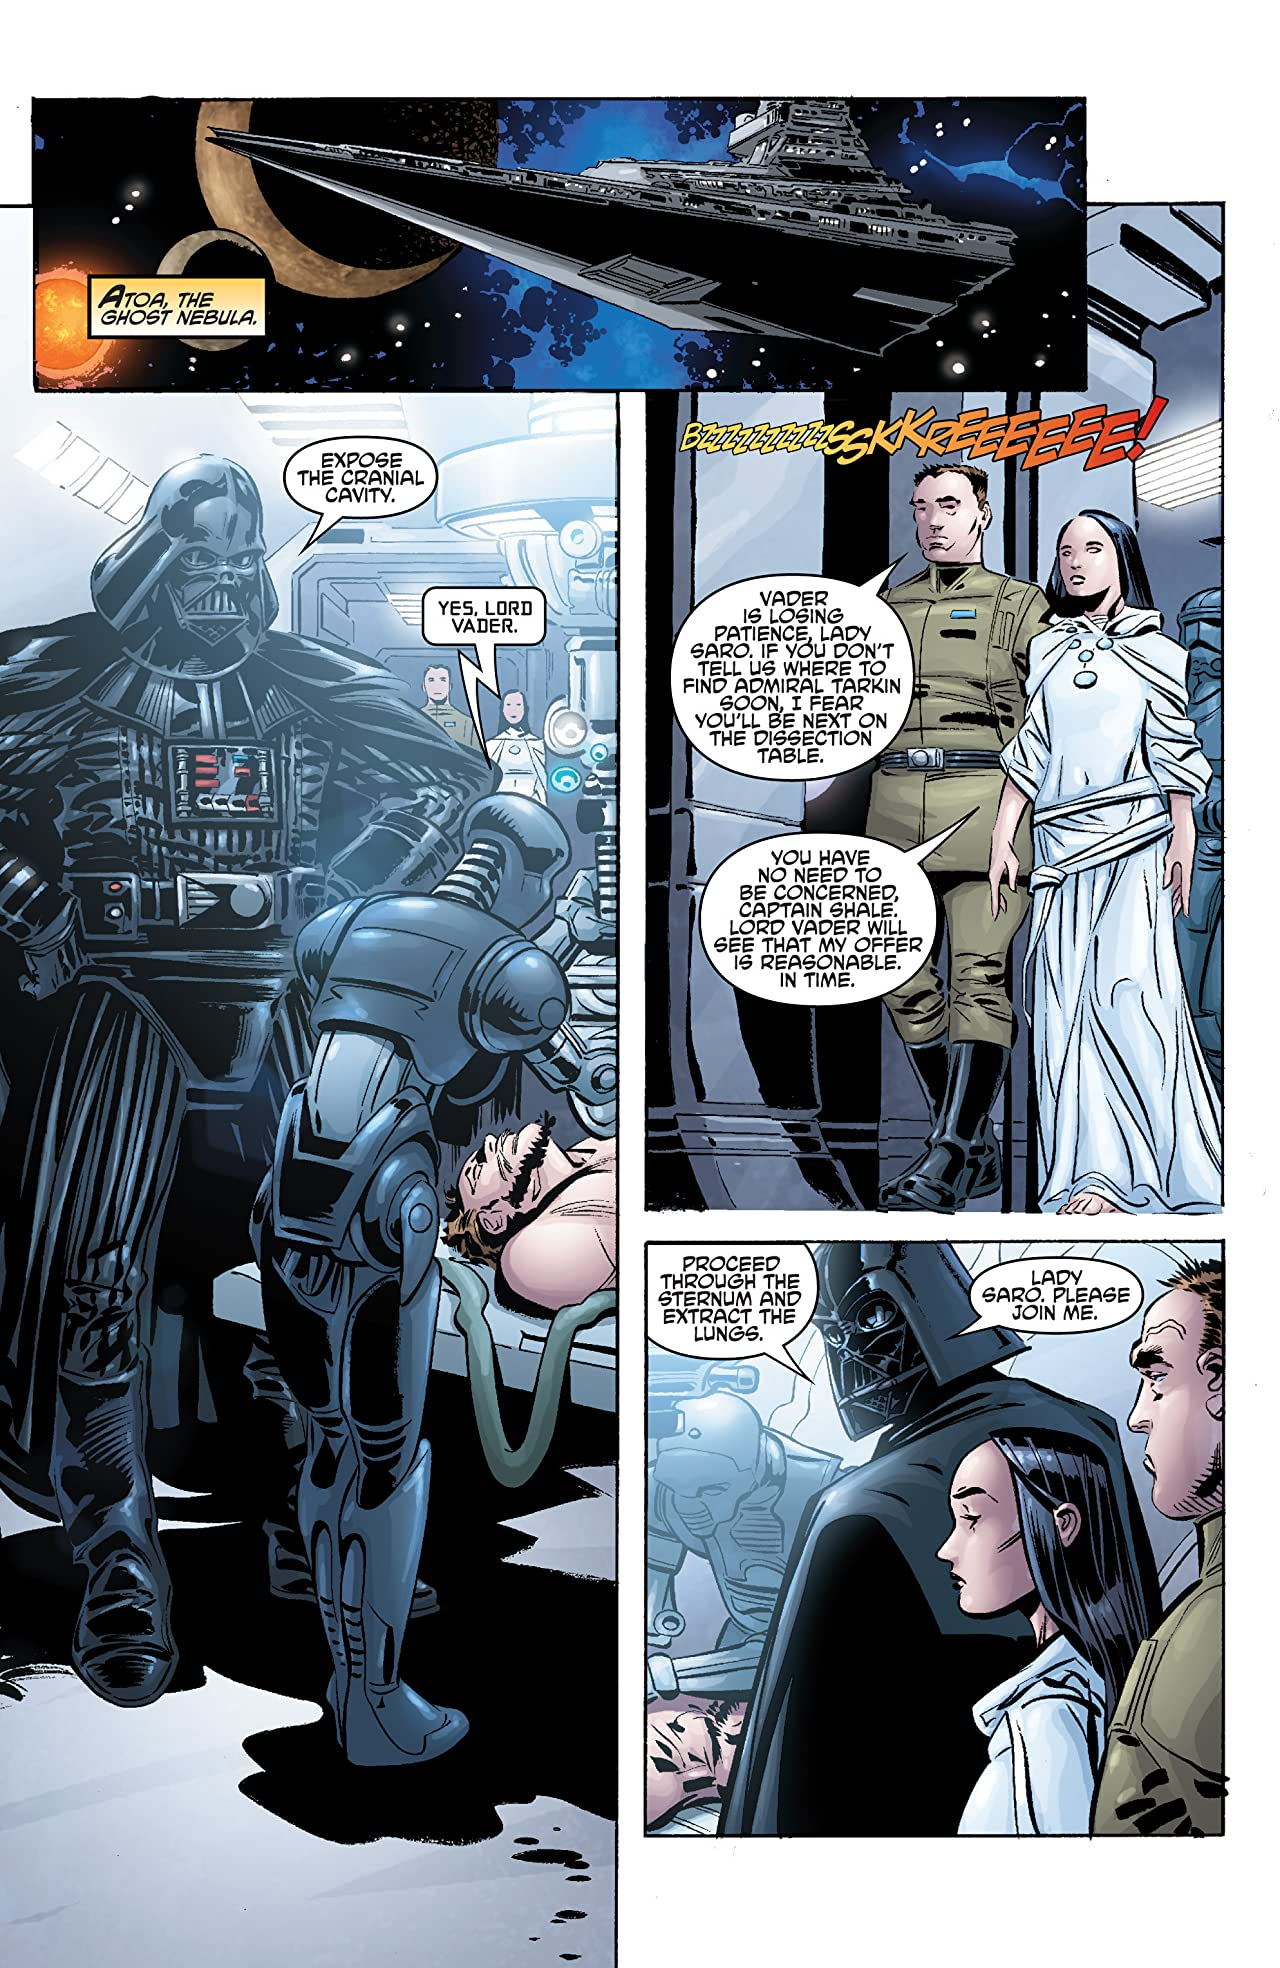 Star Wars: Darth Vader and the Lost Command (2011) #2 (of 5)